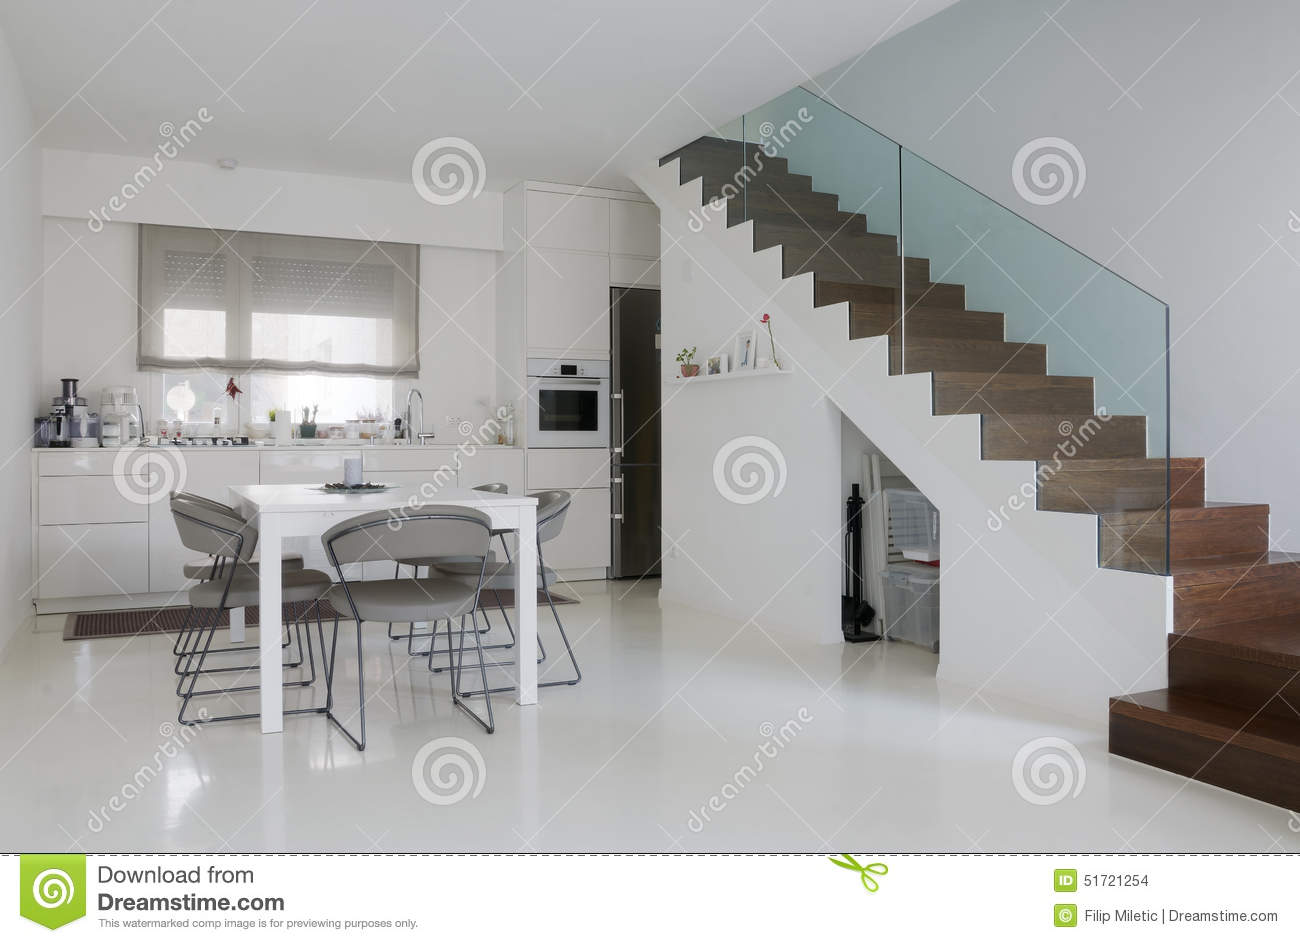 Stock Photo White Kitchen Dining Room Epoxy Floor Wooden Stairs Image51721254 on Minimalist House Floor Plans